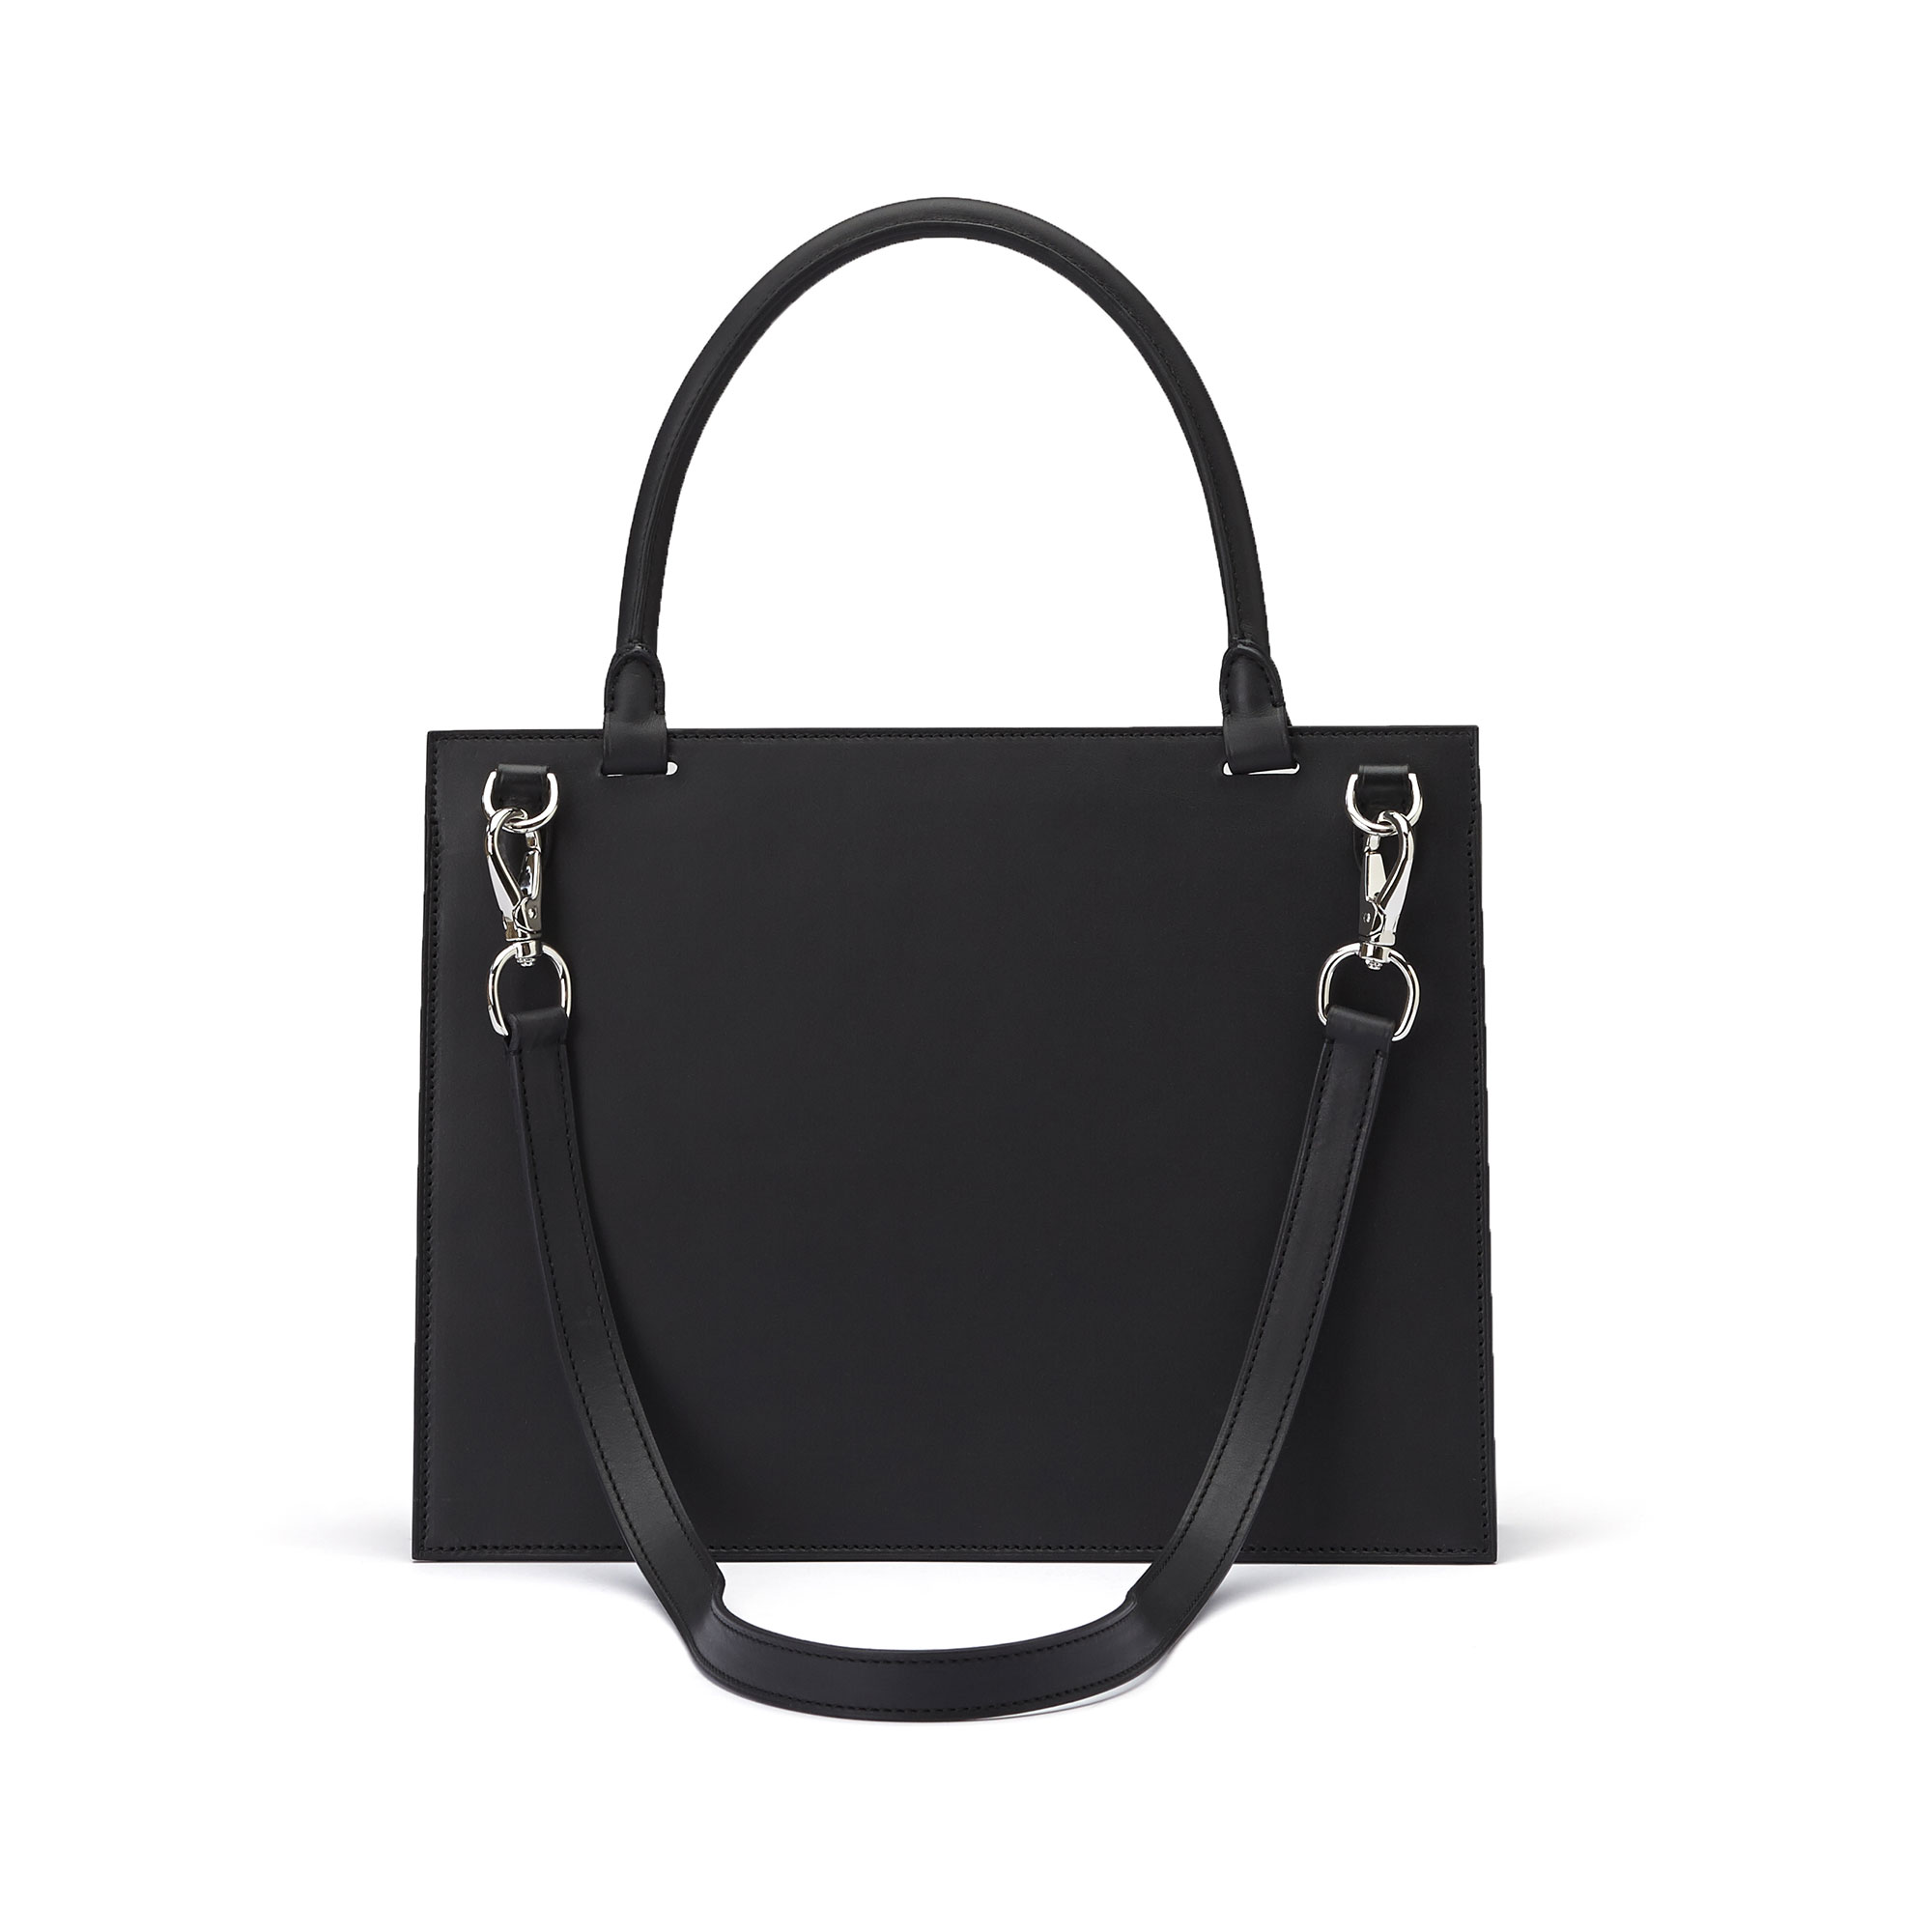 The black with studs french calf Dafne bag by Bertoni 1949 03